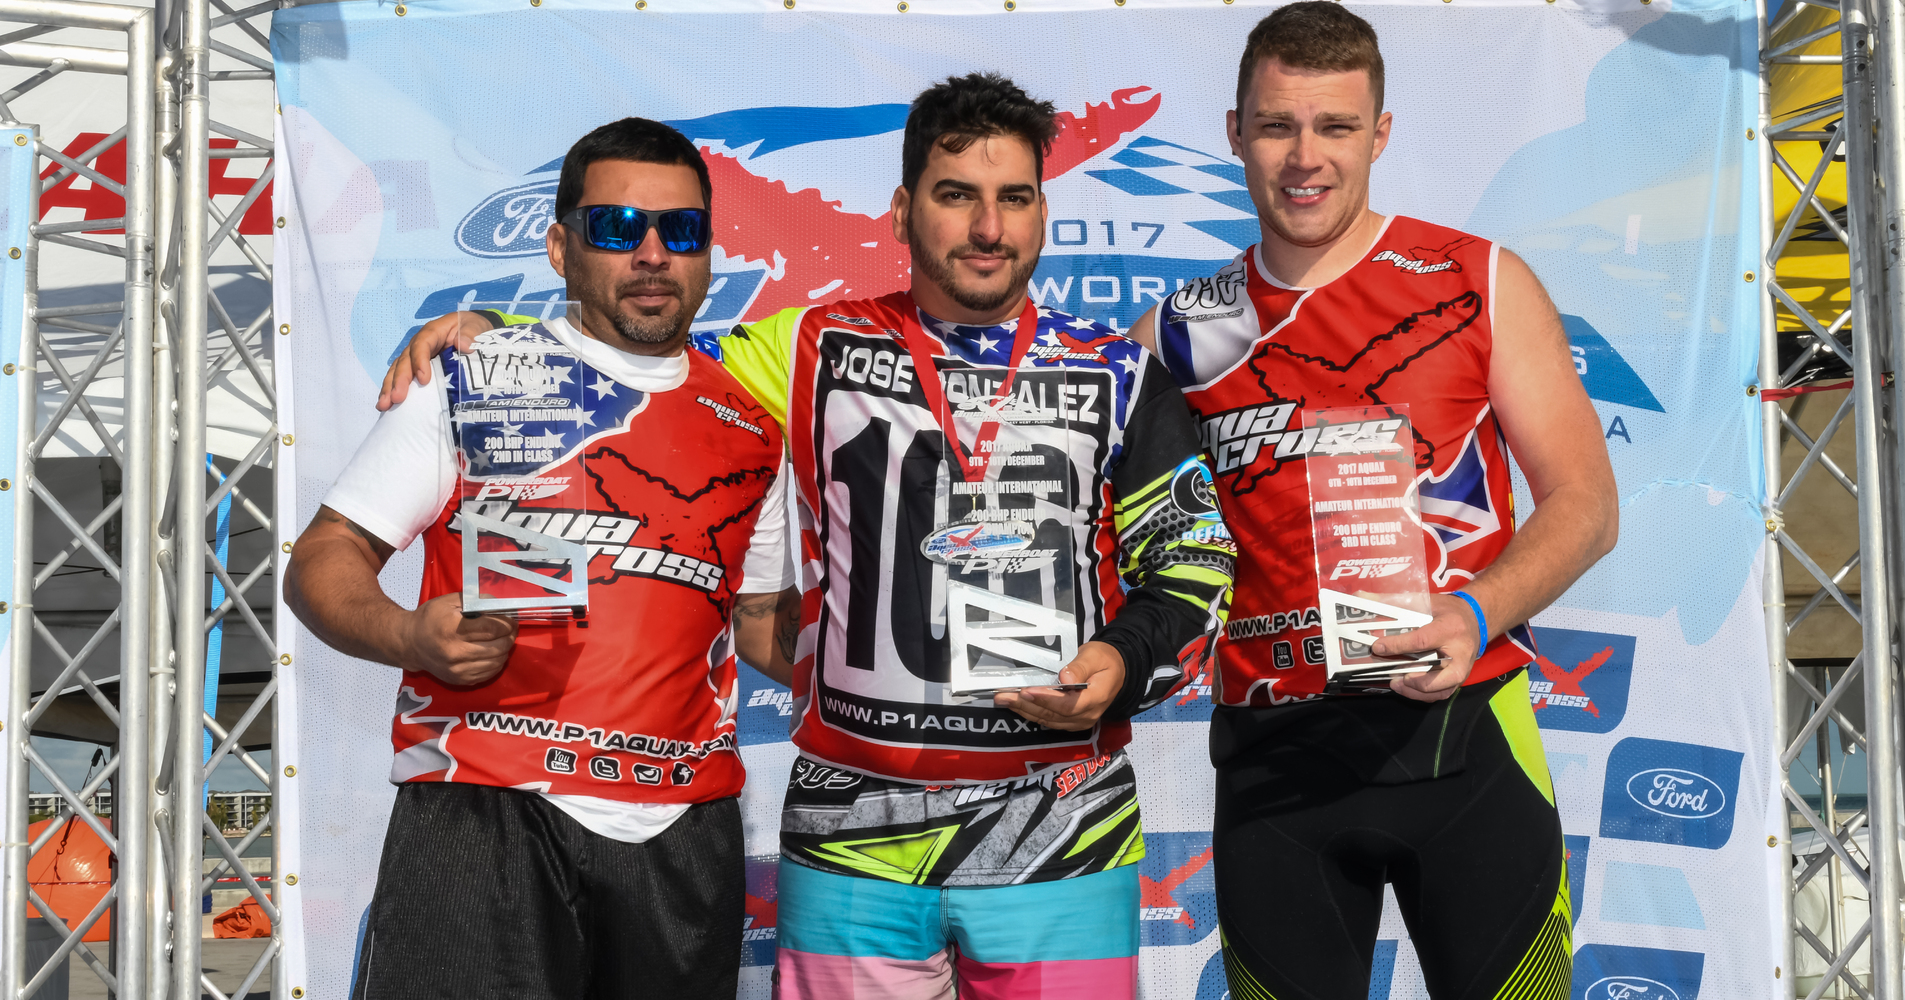 Jose Luis Gonzalez landed his first AquaX title by beating Florida Series champ Eric Diaz